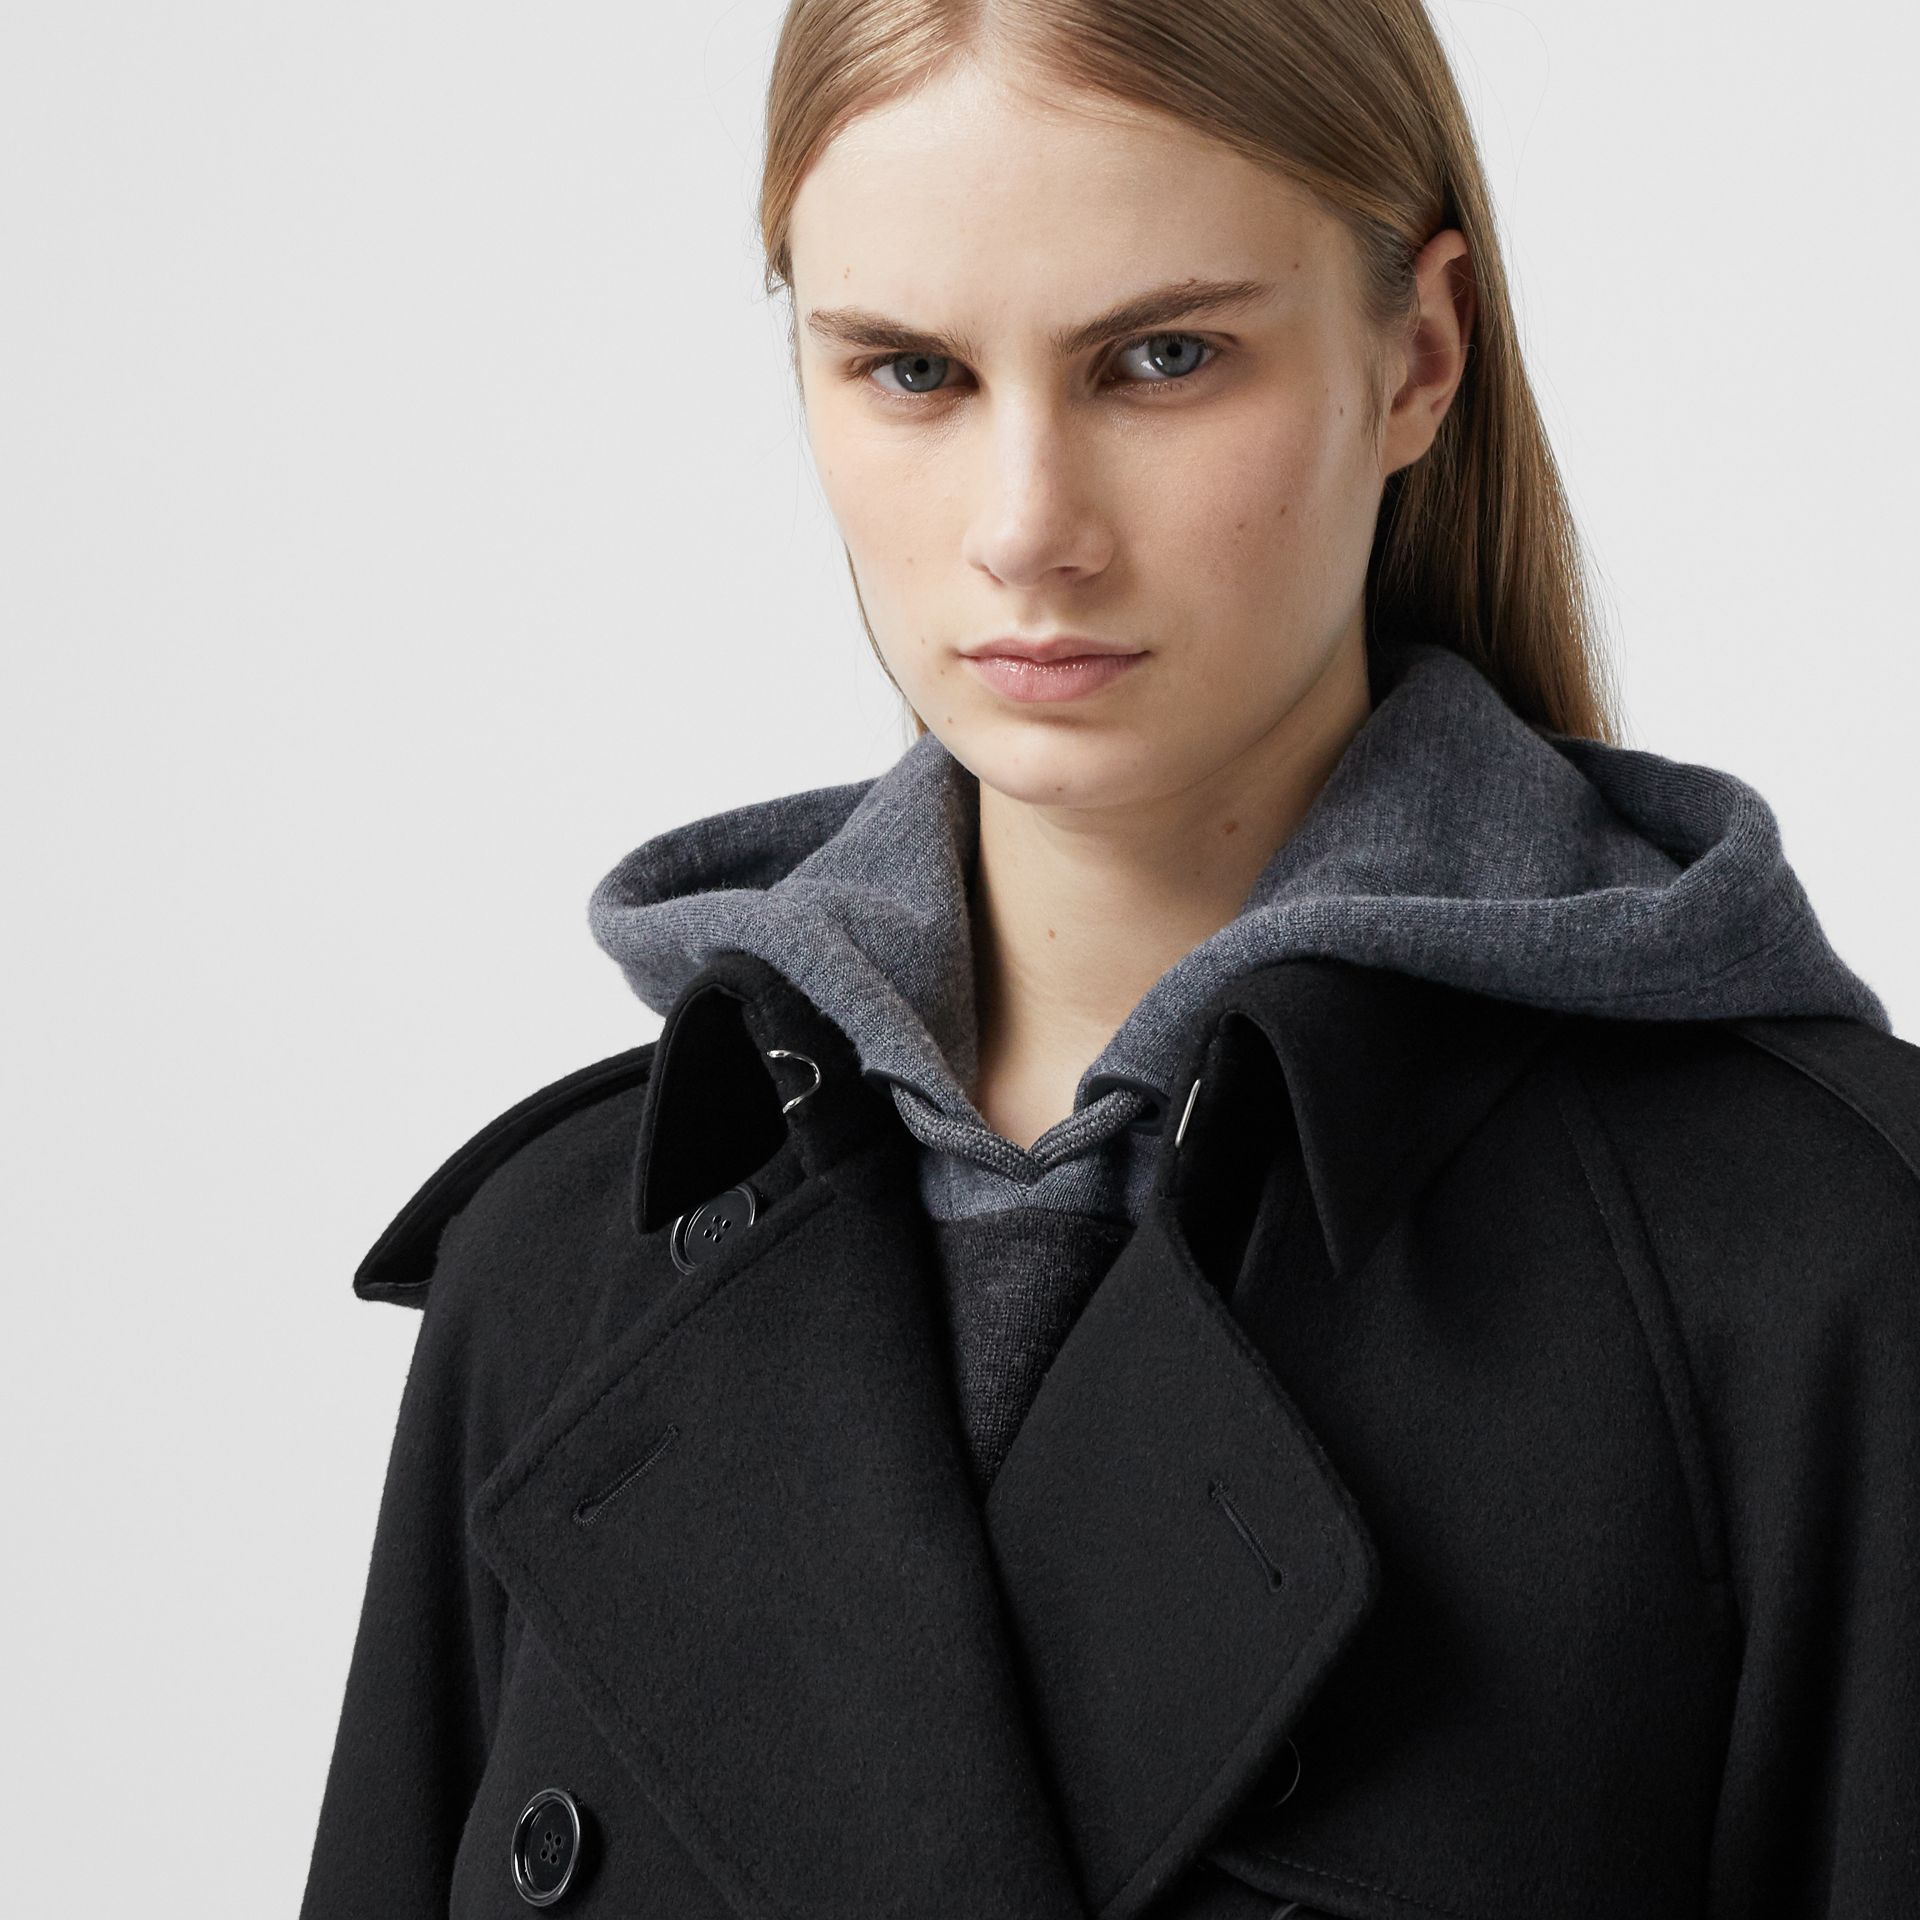 Fringed Wool Cashmere Trench Coat in Black - Women | Burberry Australia - gallery image 4